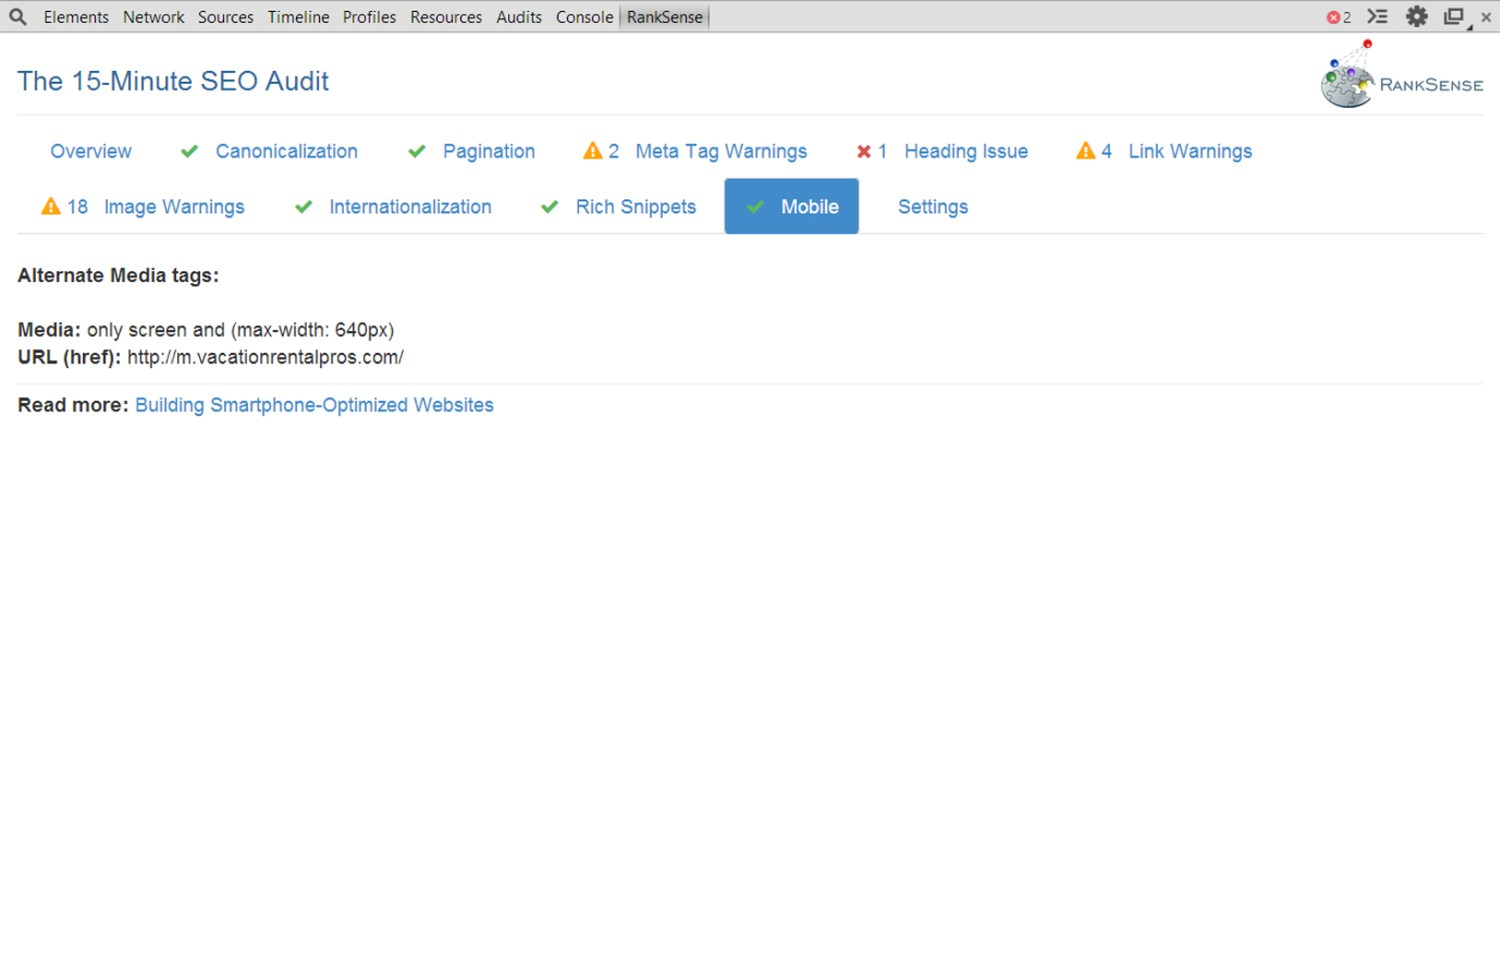 15 Minute SEO Audit Screenshot 8 Mobile